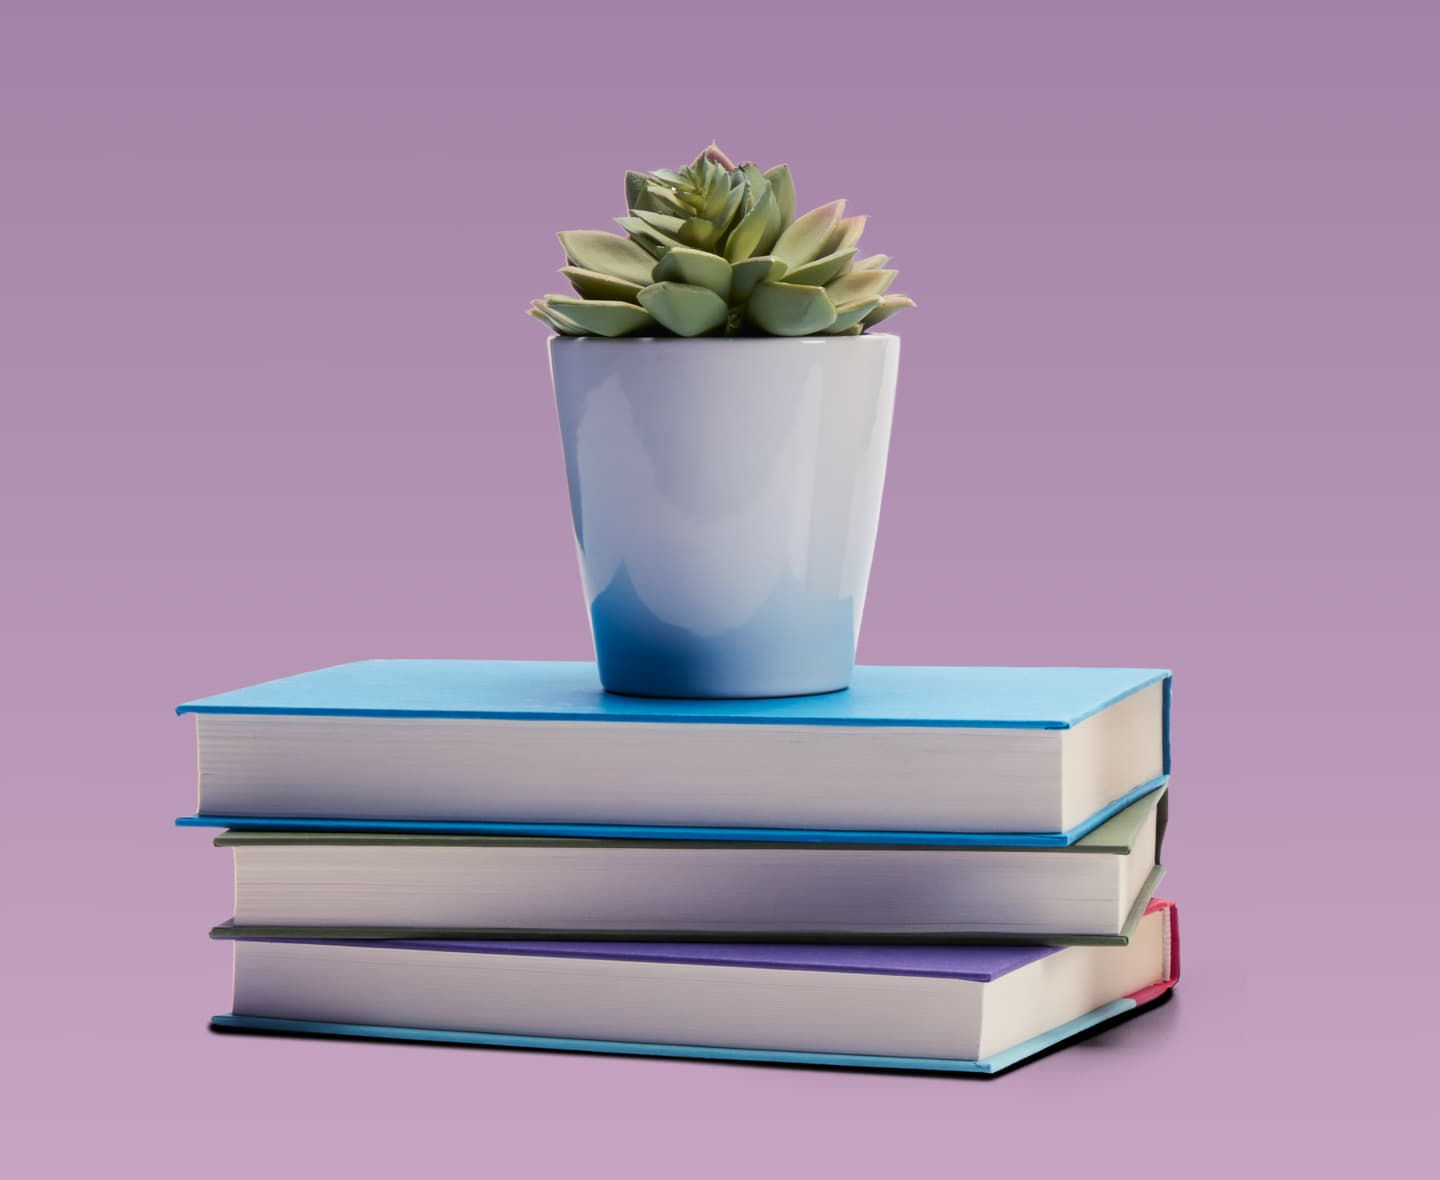 A plant and a few books